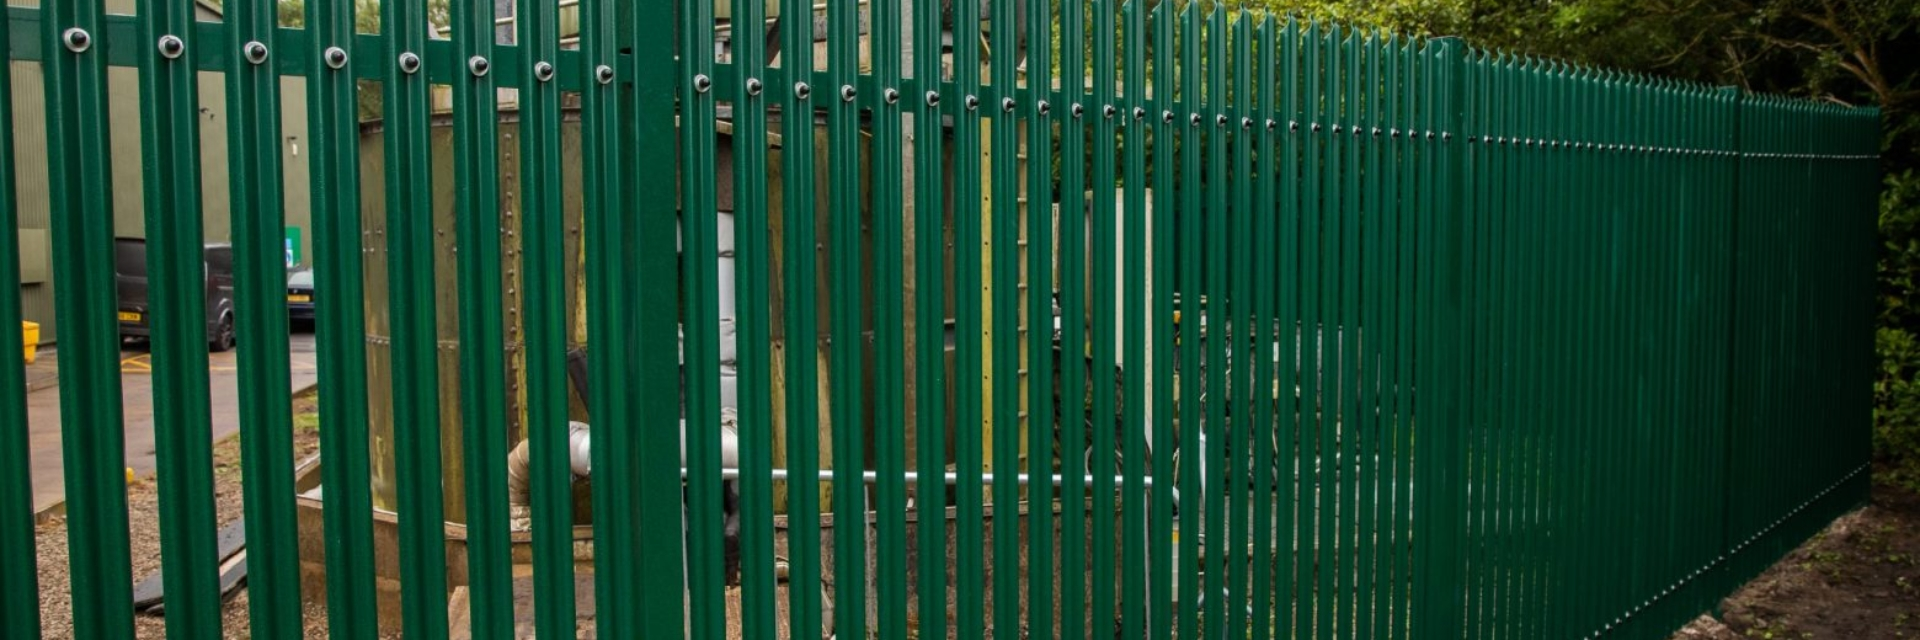 High Security Fencing and Gates to Secure High Value Assets